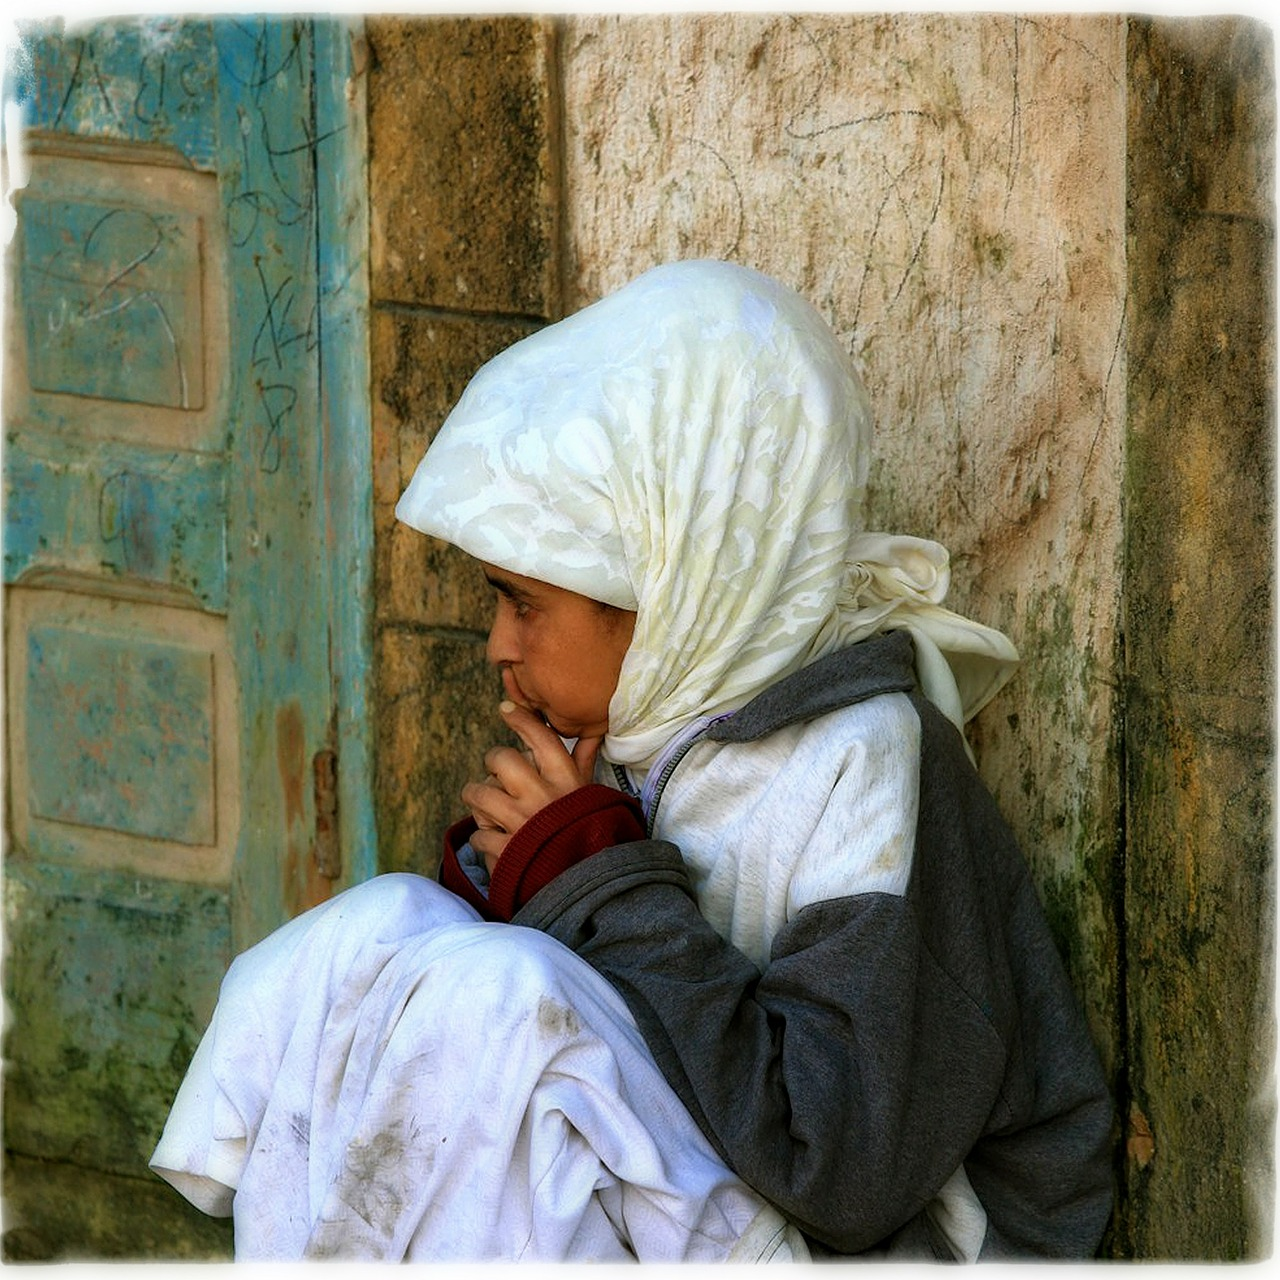 morocco girl child free photo